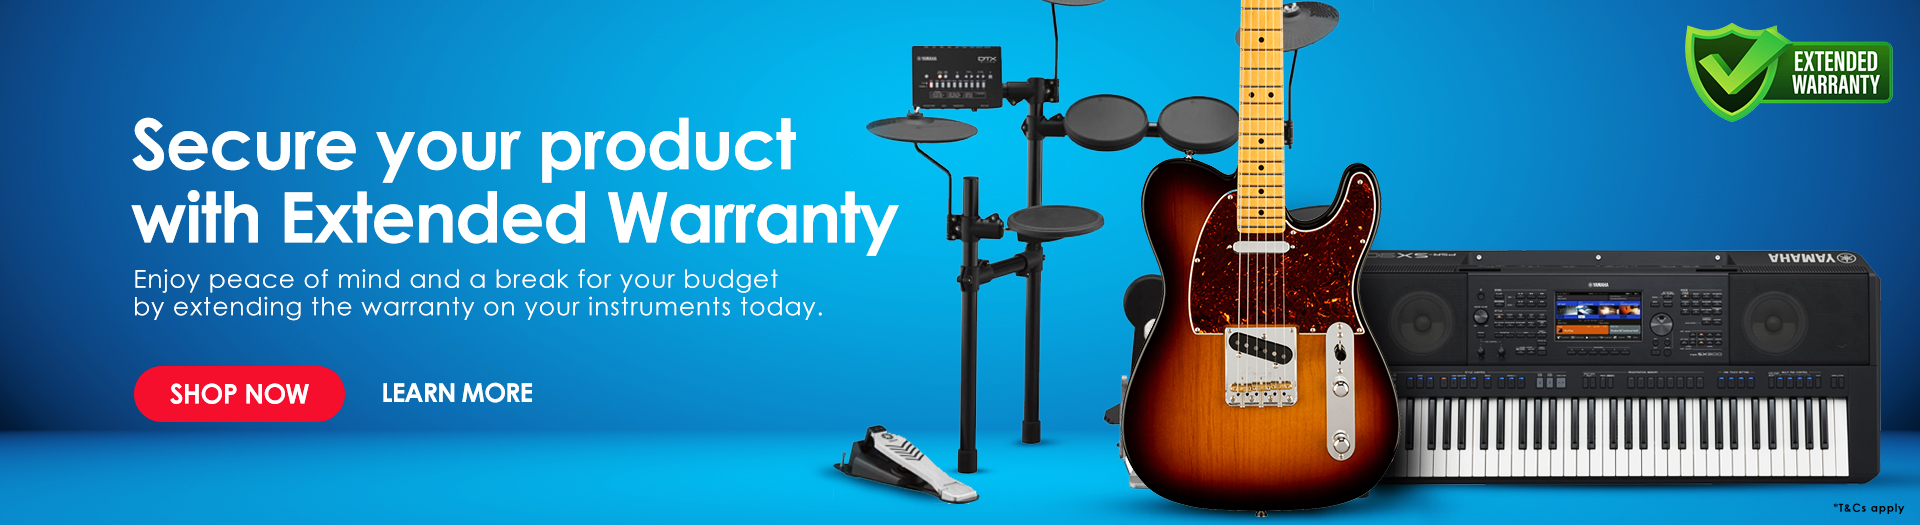 Extended Warranty for Musical Instruments